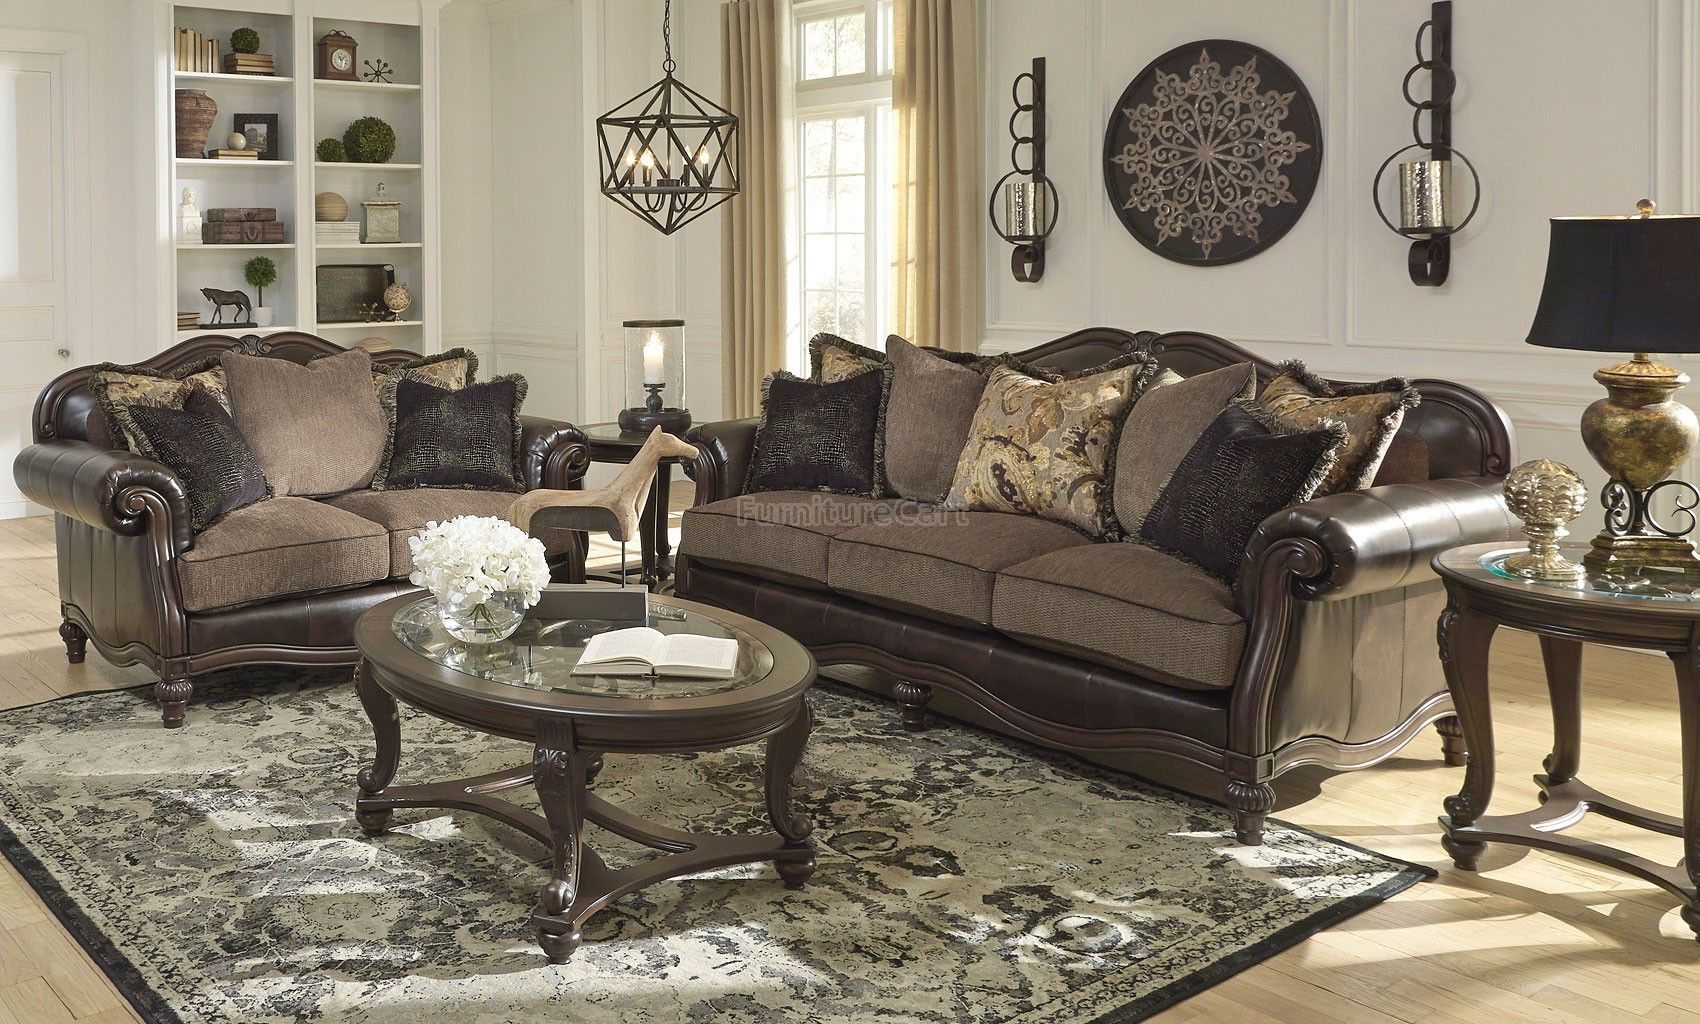 Winnsboro DuraBlend Vintage Living Room Set Signature Design